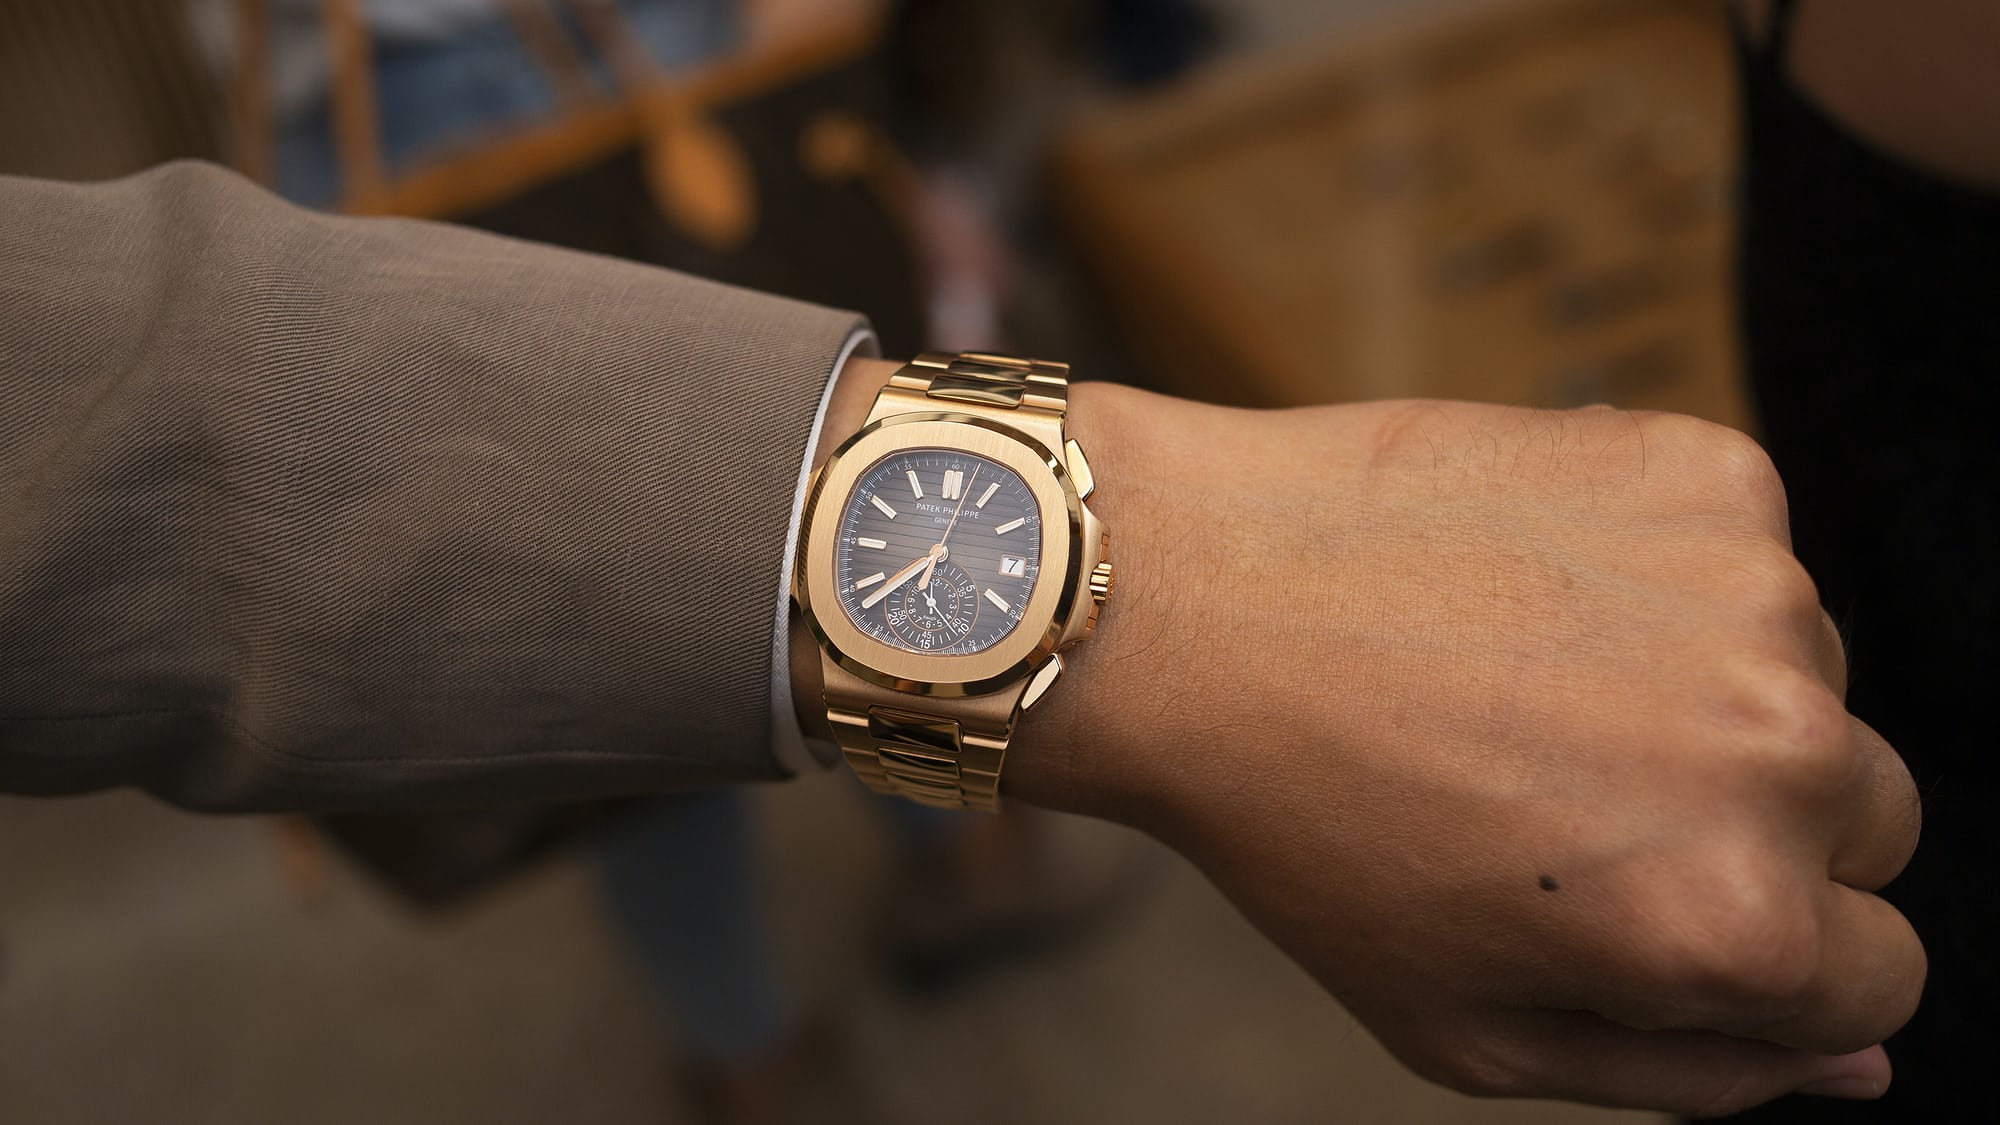 Photo Report: The Watches And Cars Of The HODINKEE Pop-Up At The UTA Artist Space In Los Angeles  3H0A0467 copy